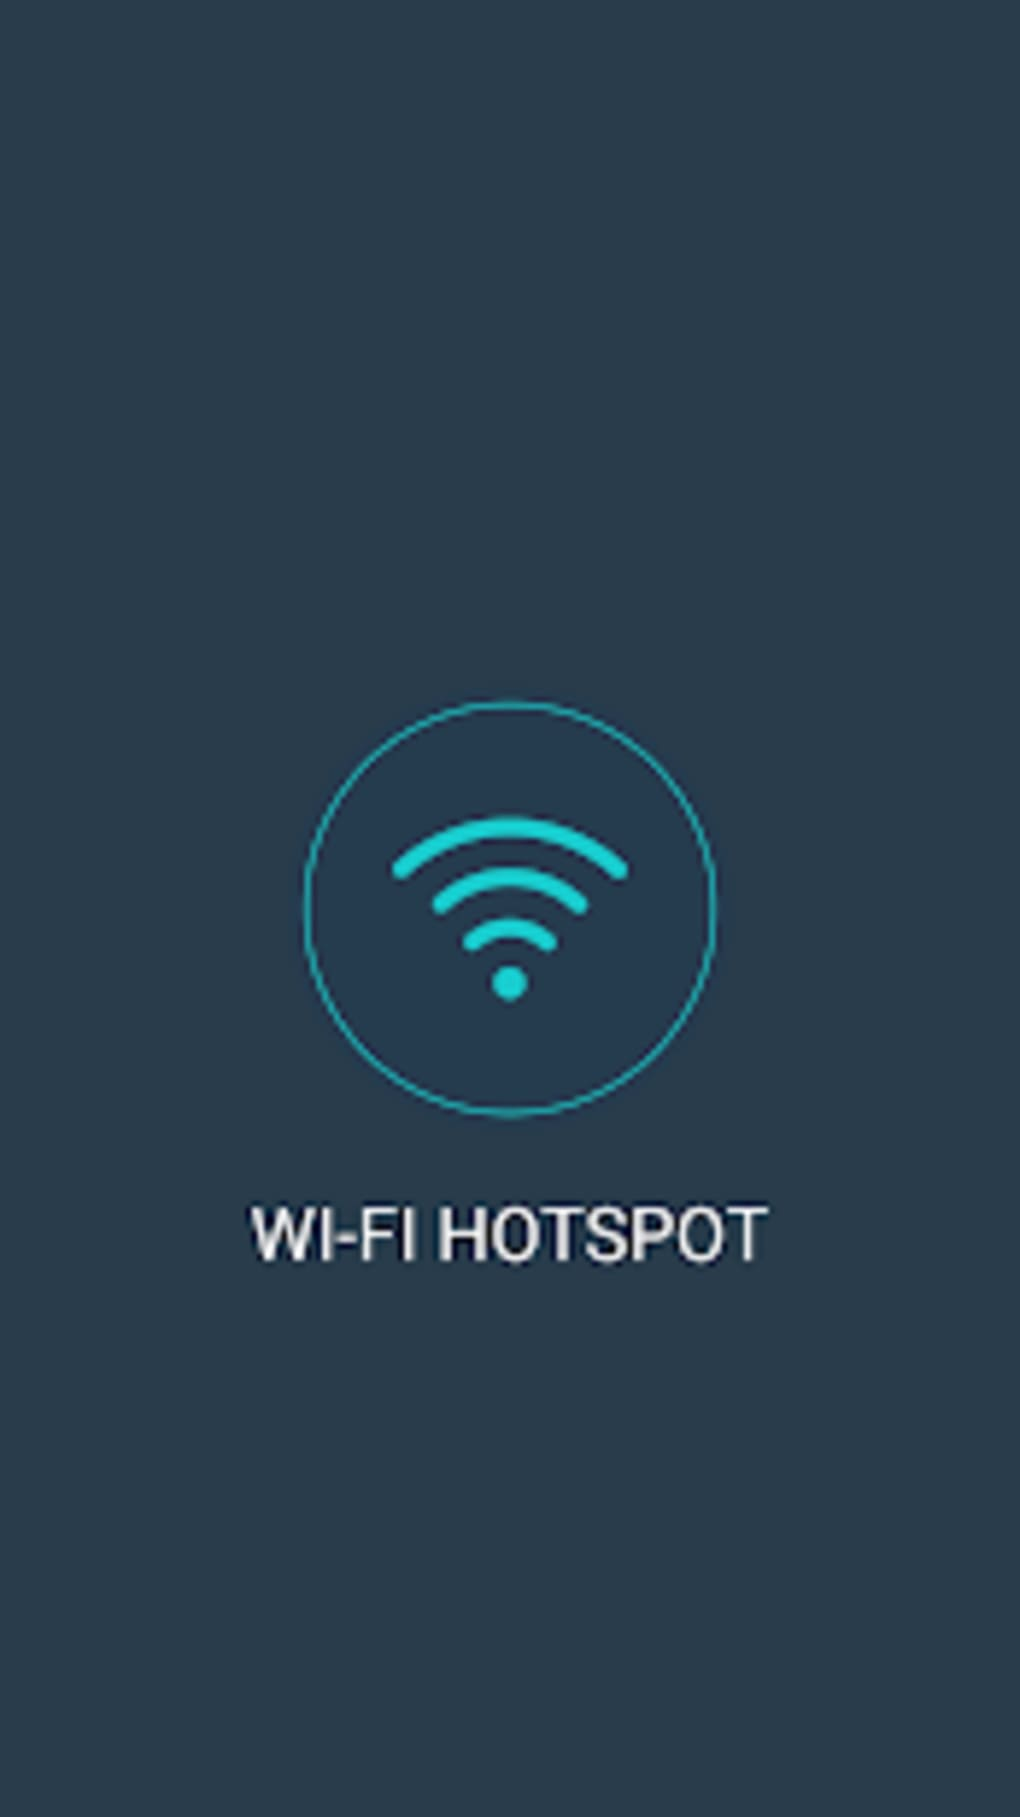 Free Wifi Hotspot Portable for Android - Download